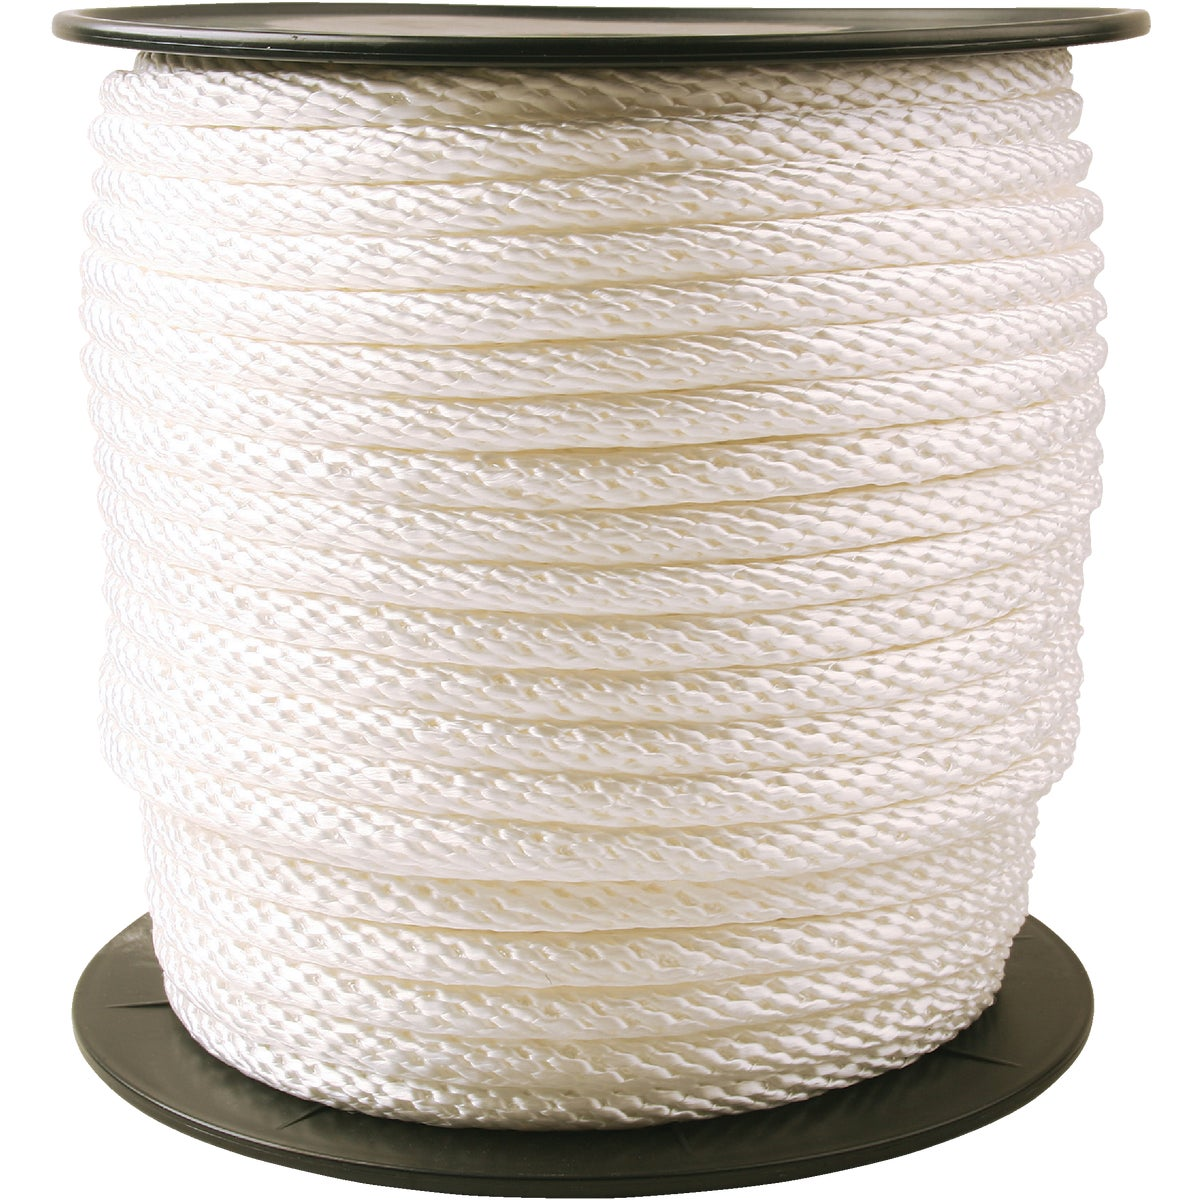 "1/2""X250' NYL BRAID ROPE - 736644 by Do it Best"